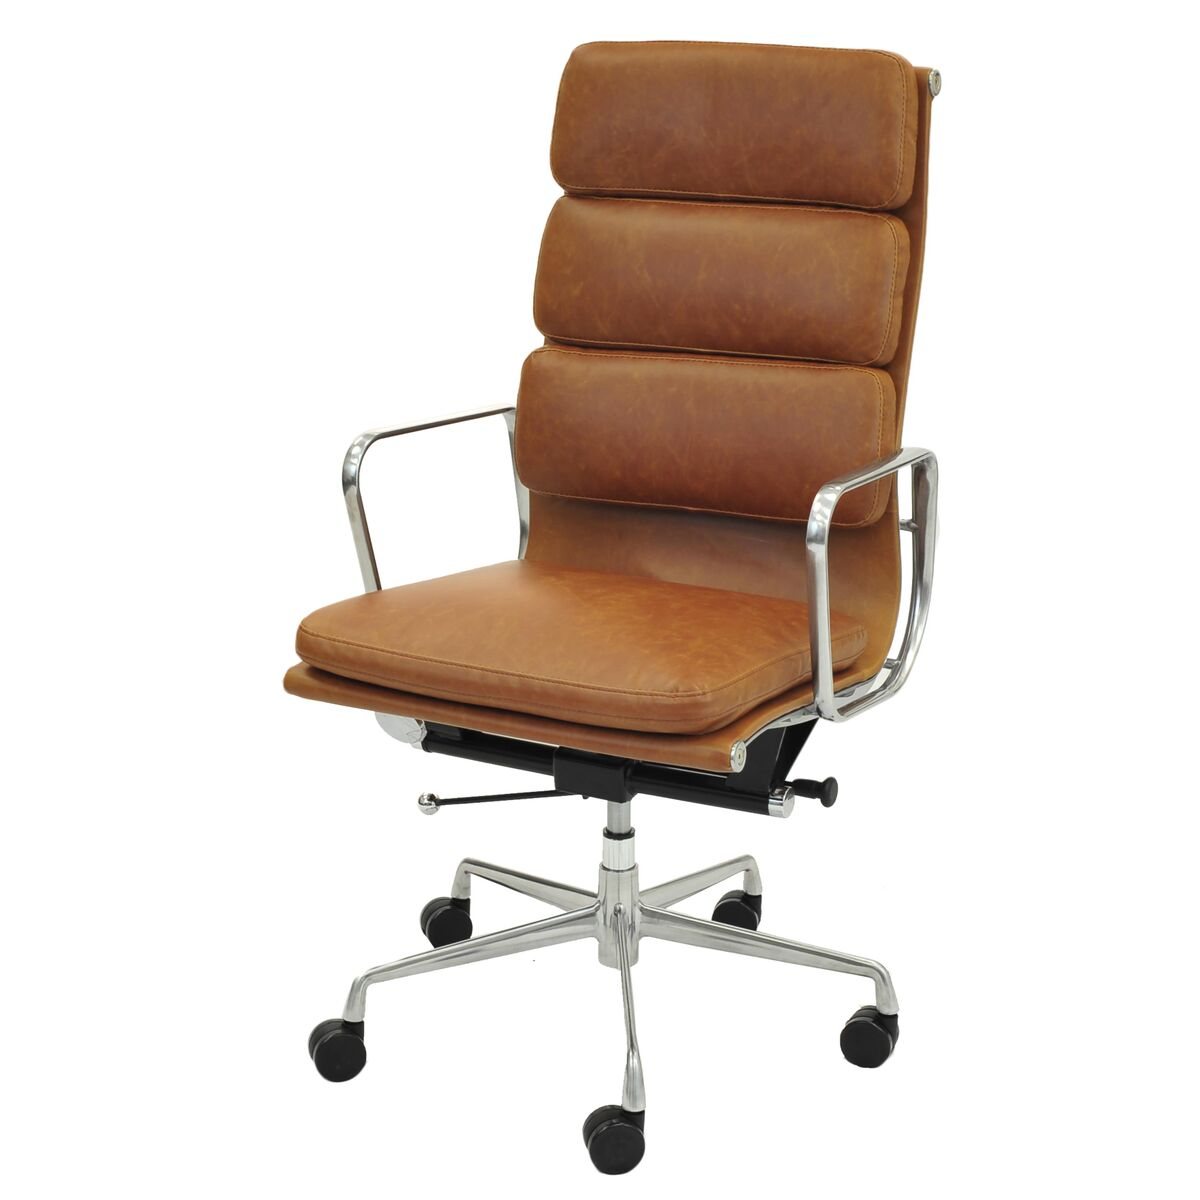 High-Back Padded Office Chair in Vintage Tawny